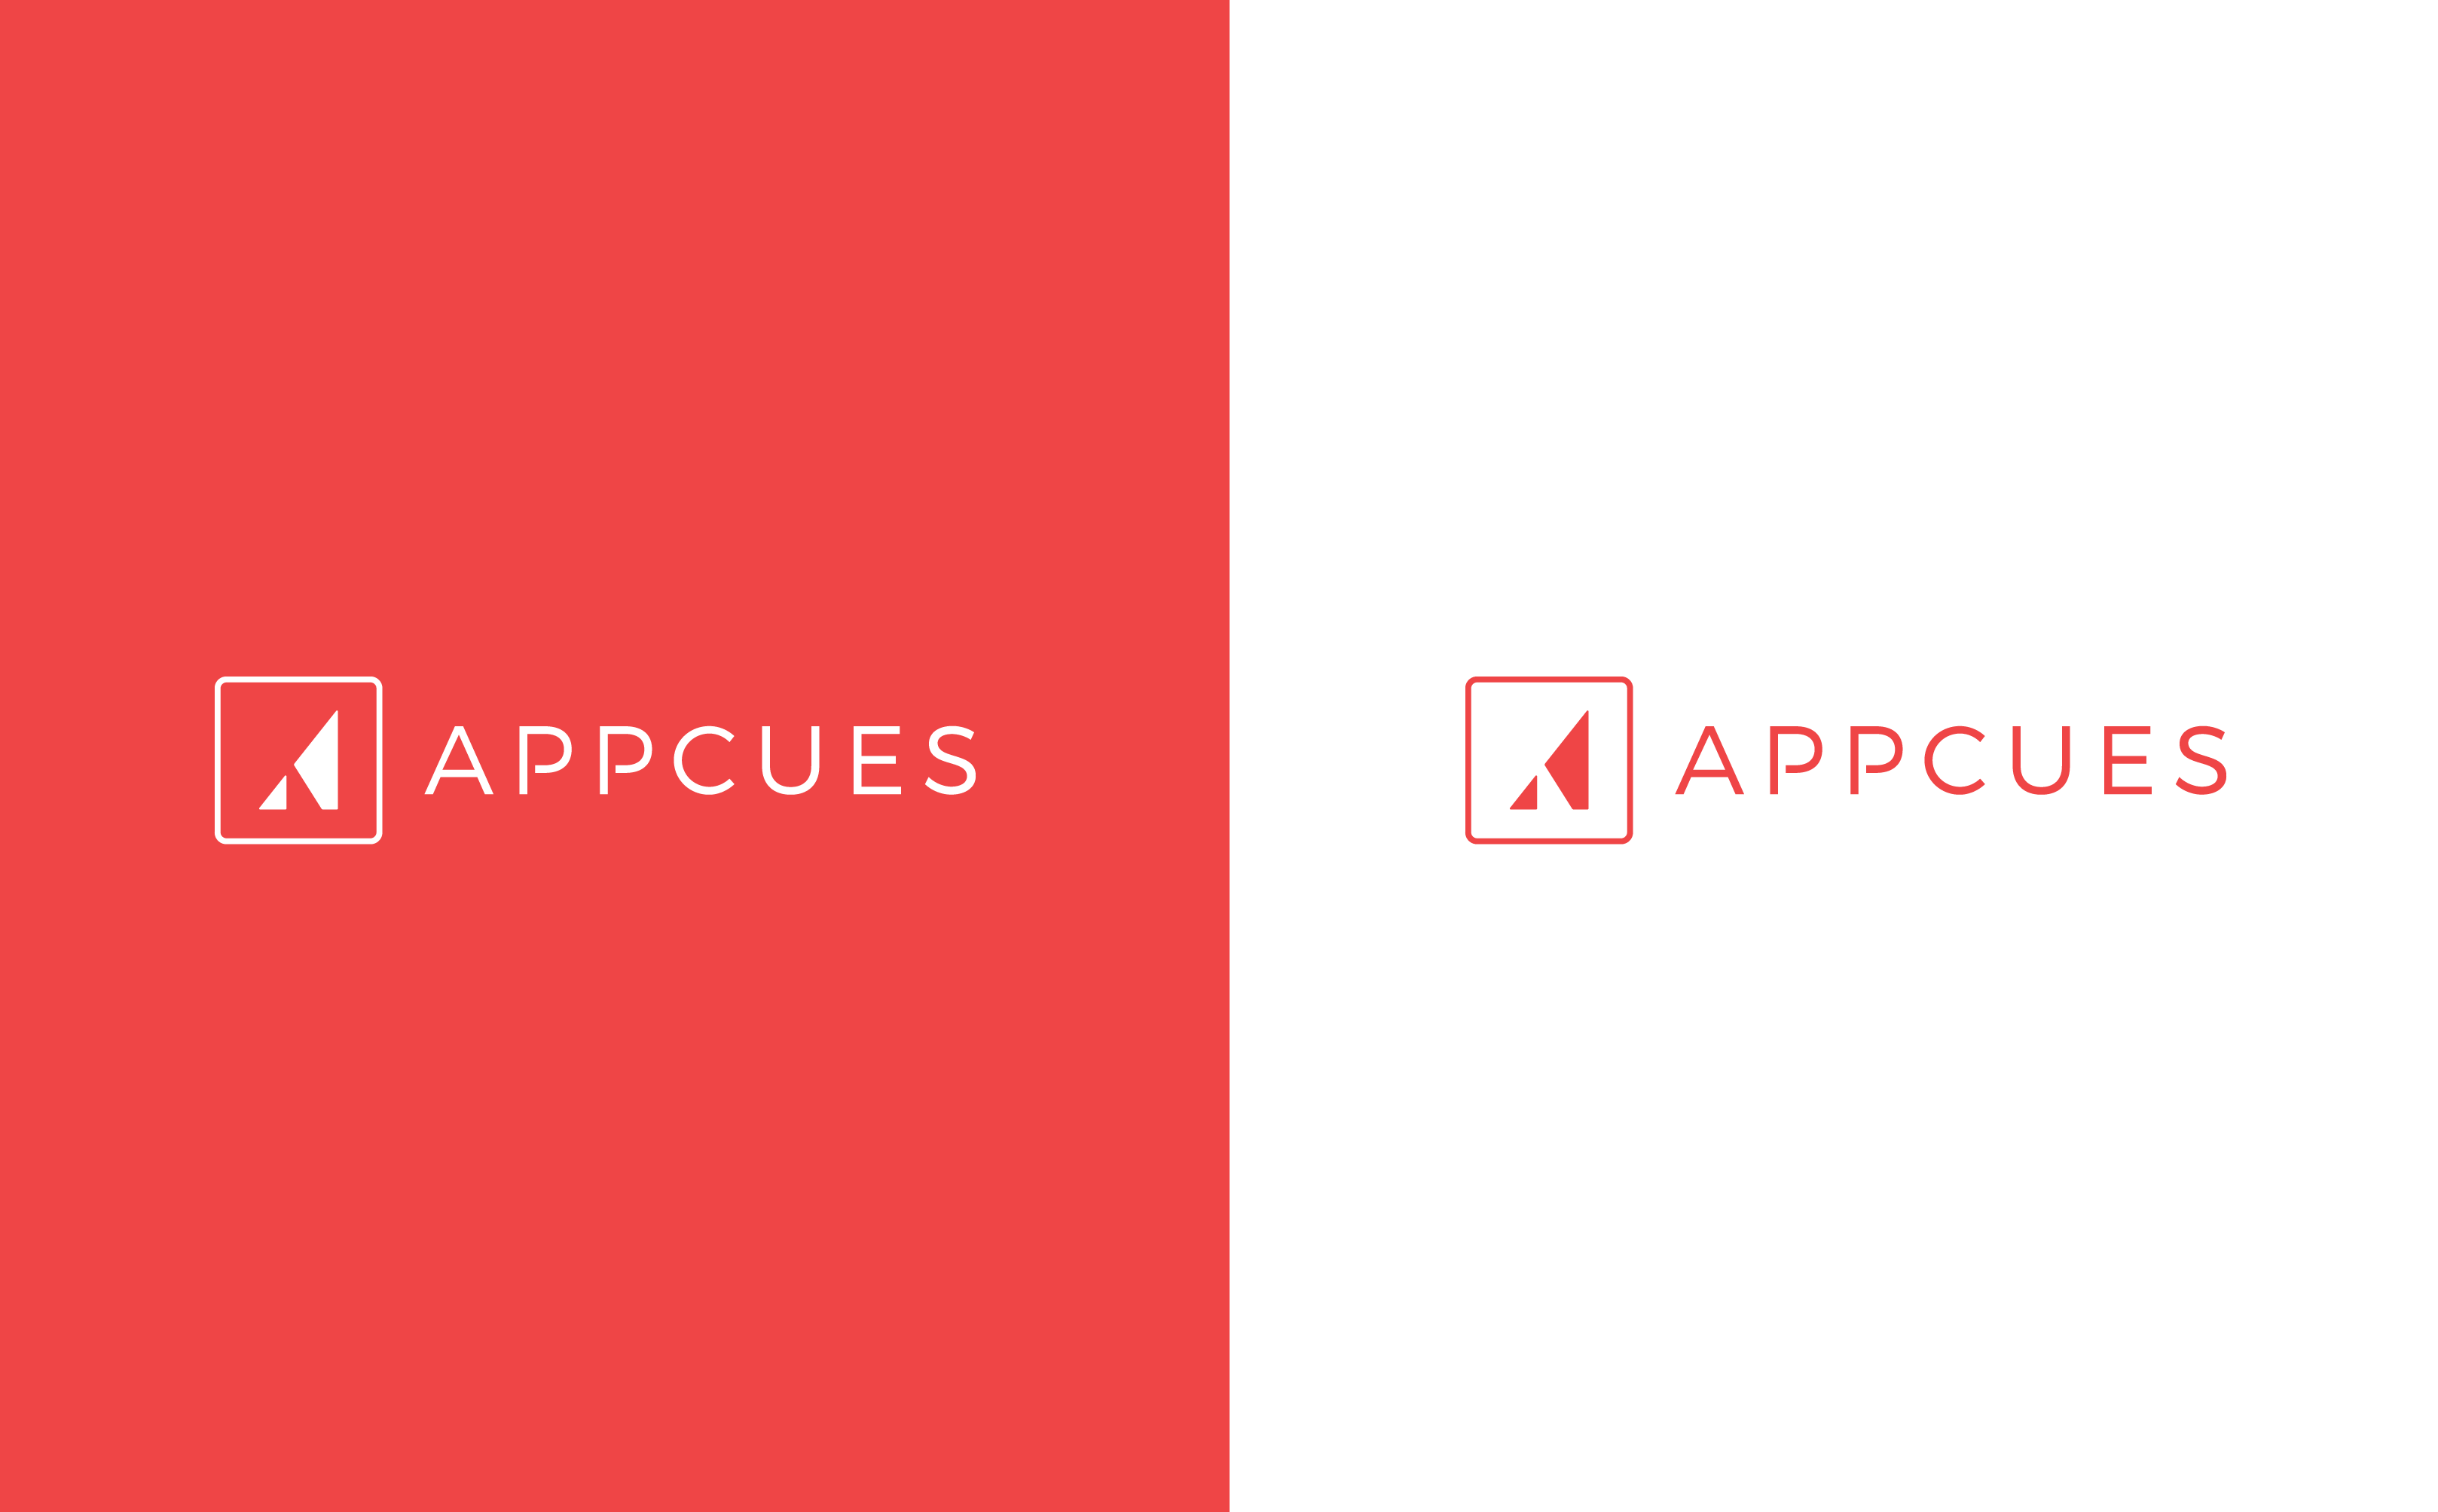 This is our old branding. This image shows the former Appcues logo and our old primary color. On the left is a white logo on a red background, on the right is the red logo and text on a white background.